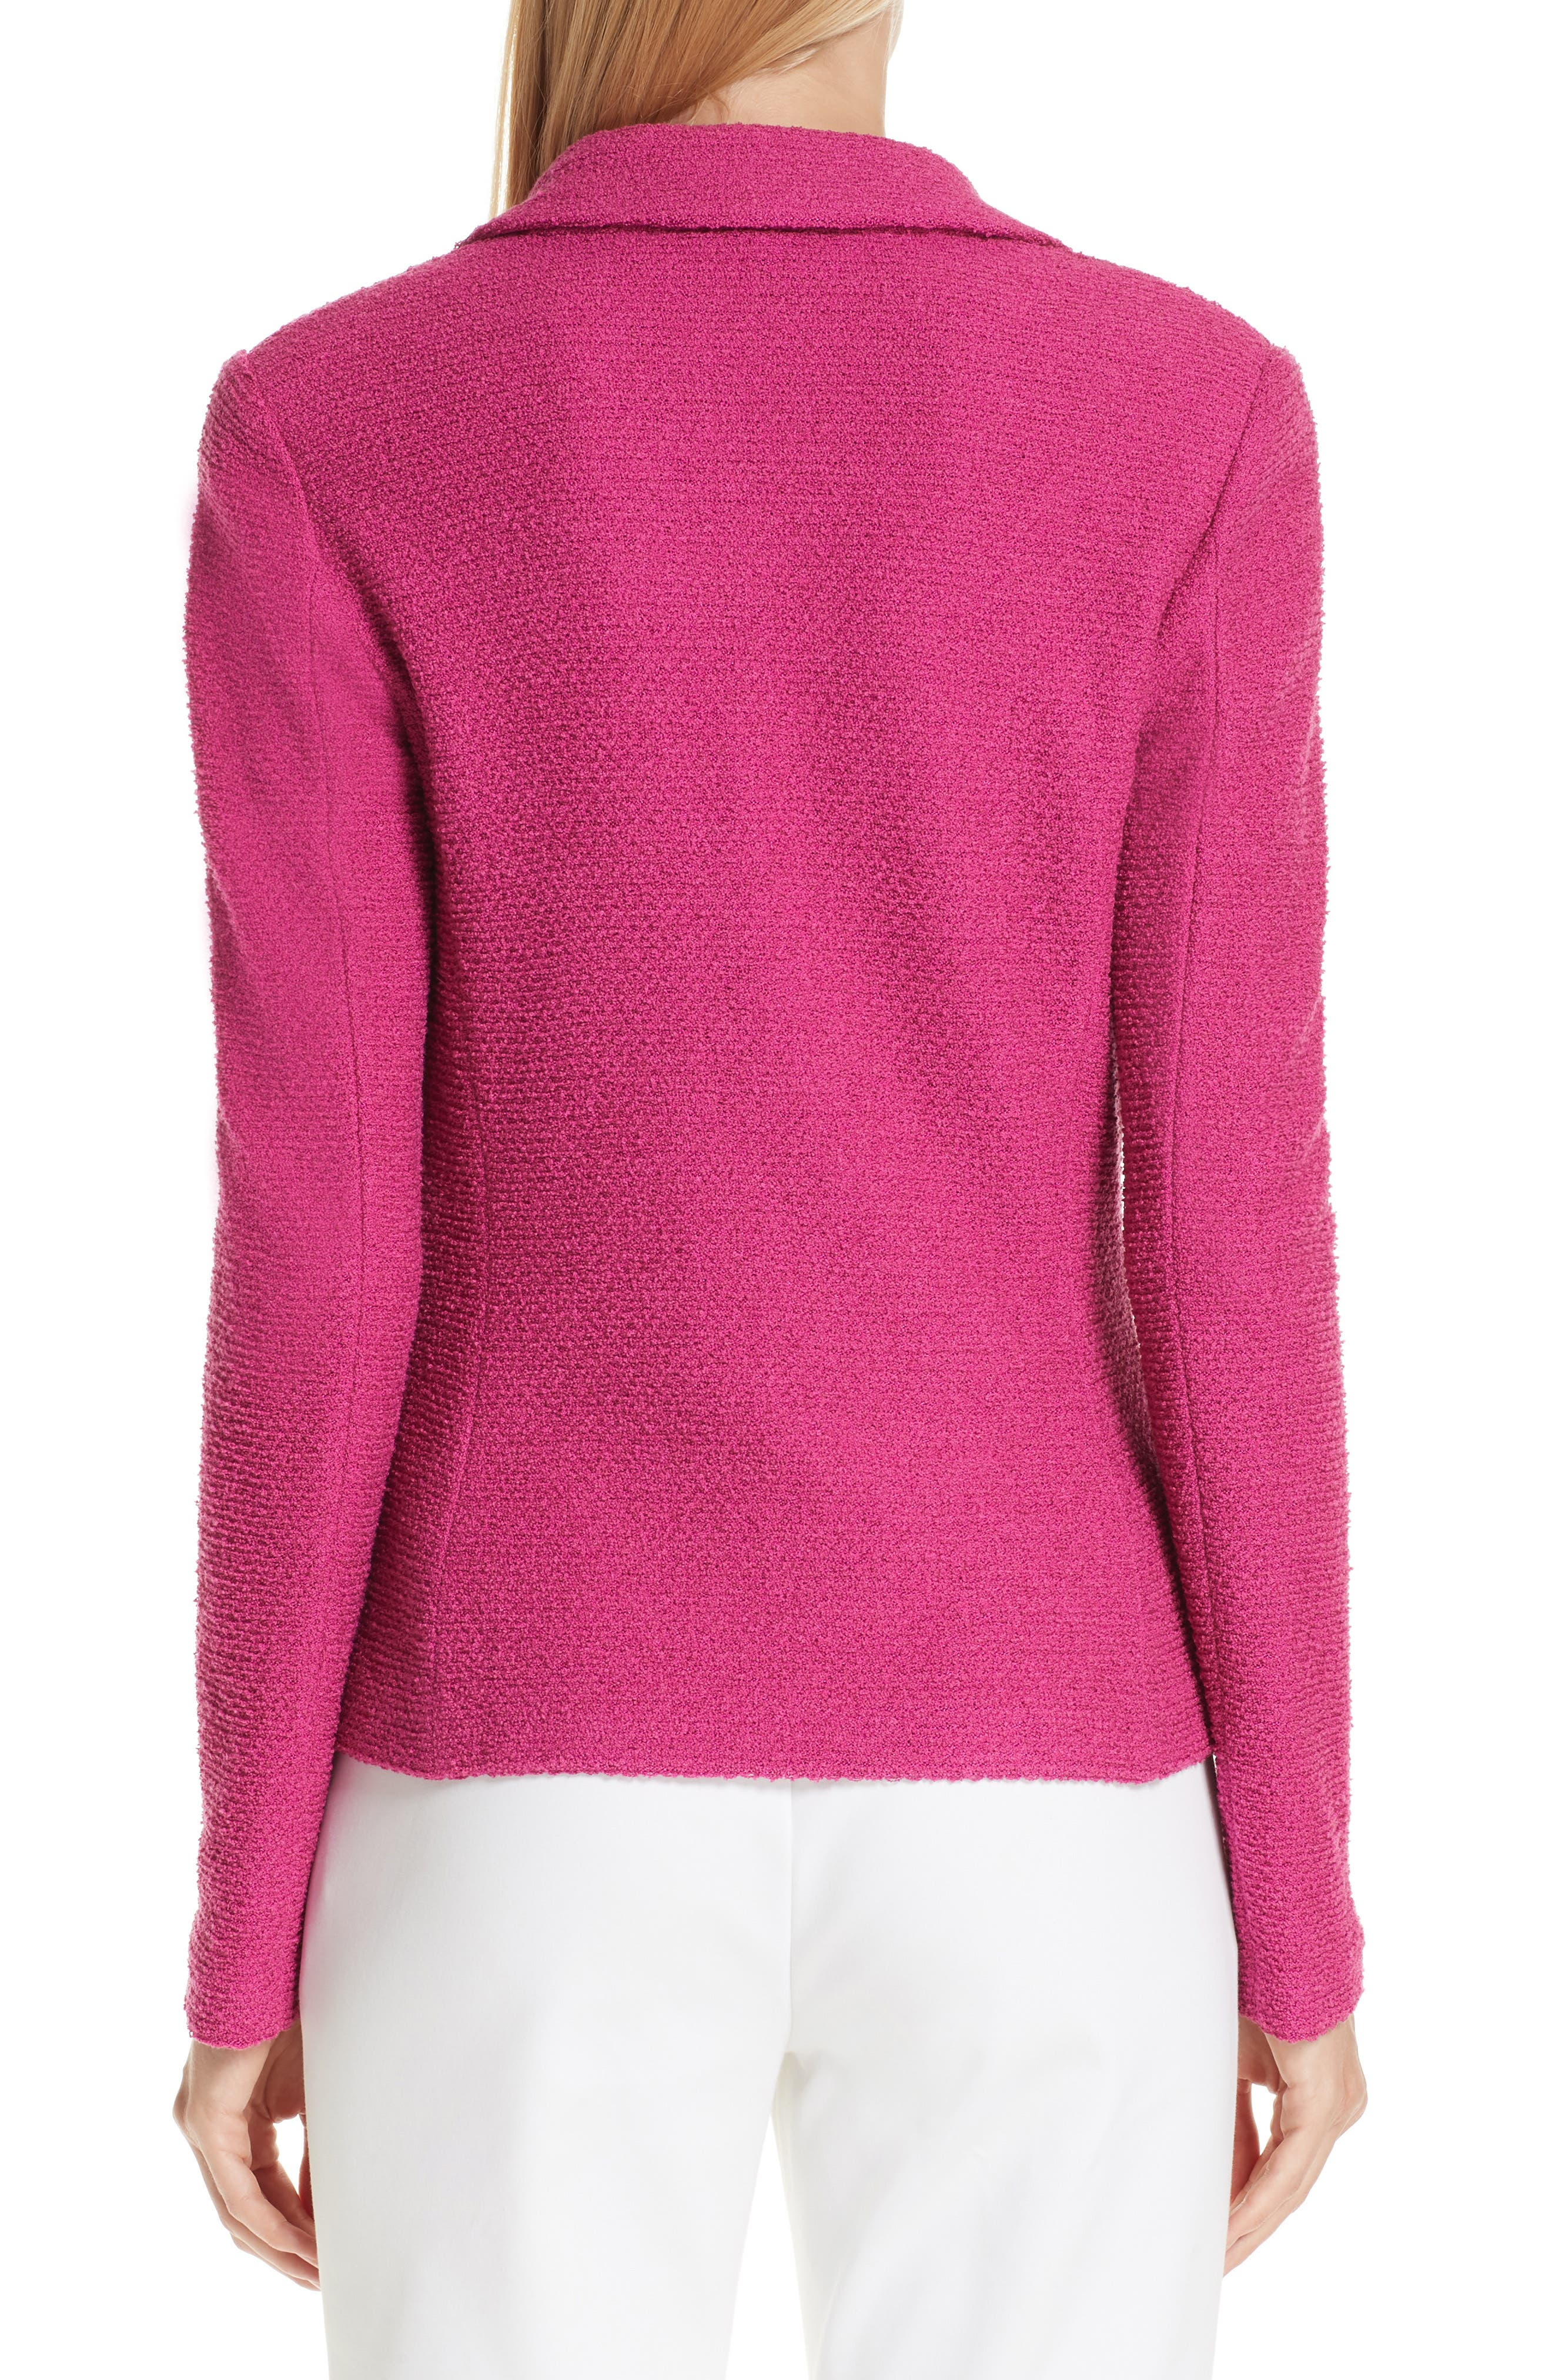 ST. JOHN COLLECTION, Refined Knit Jacket, Alternate thumbnail 2, color, CAMELLIA